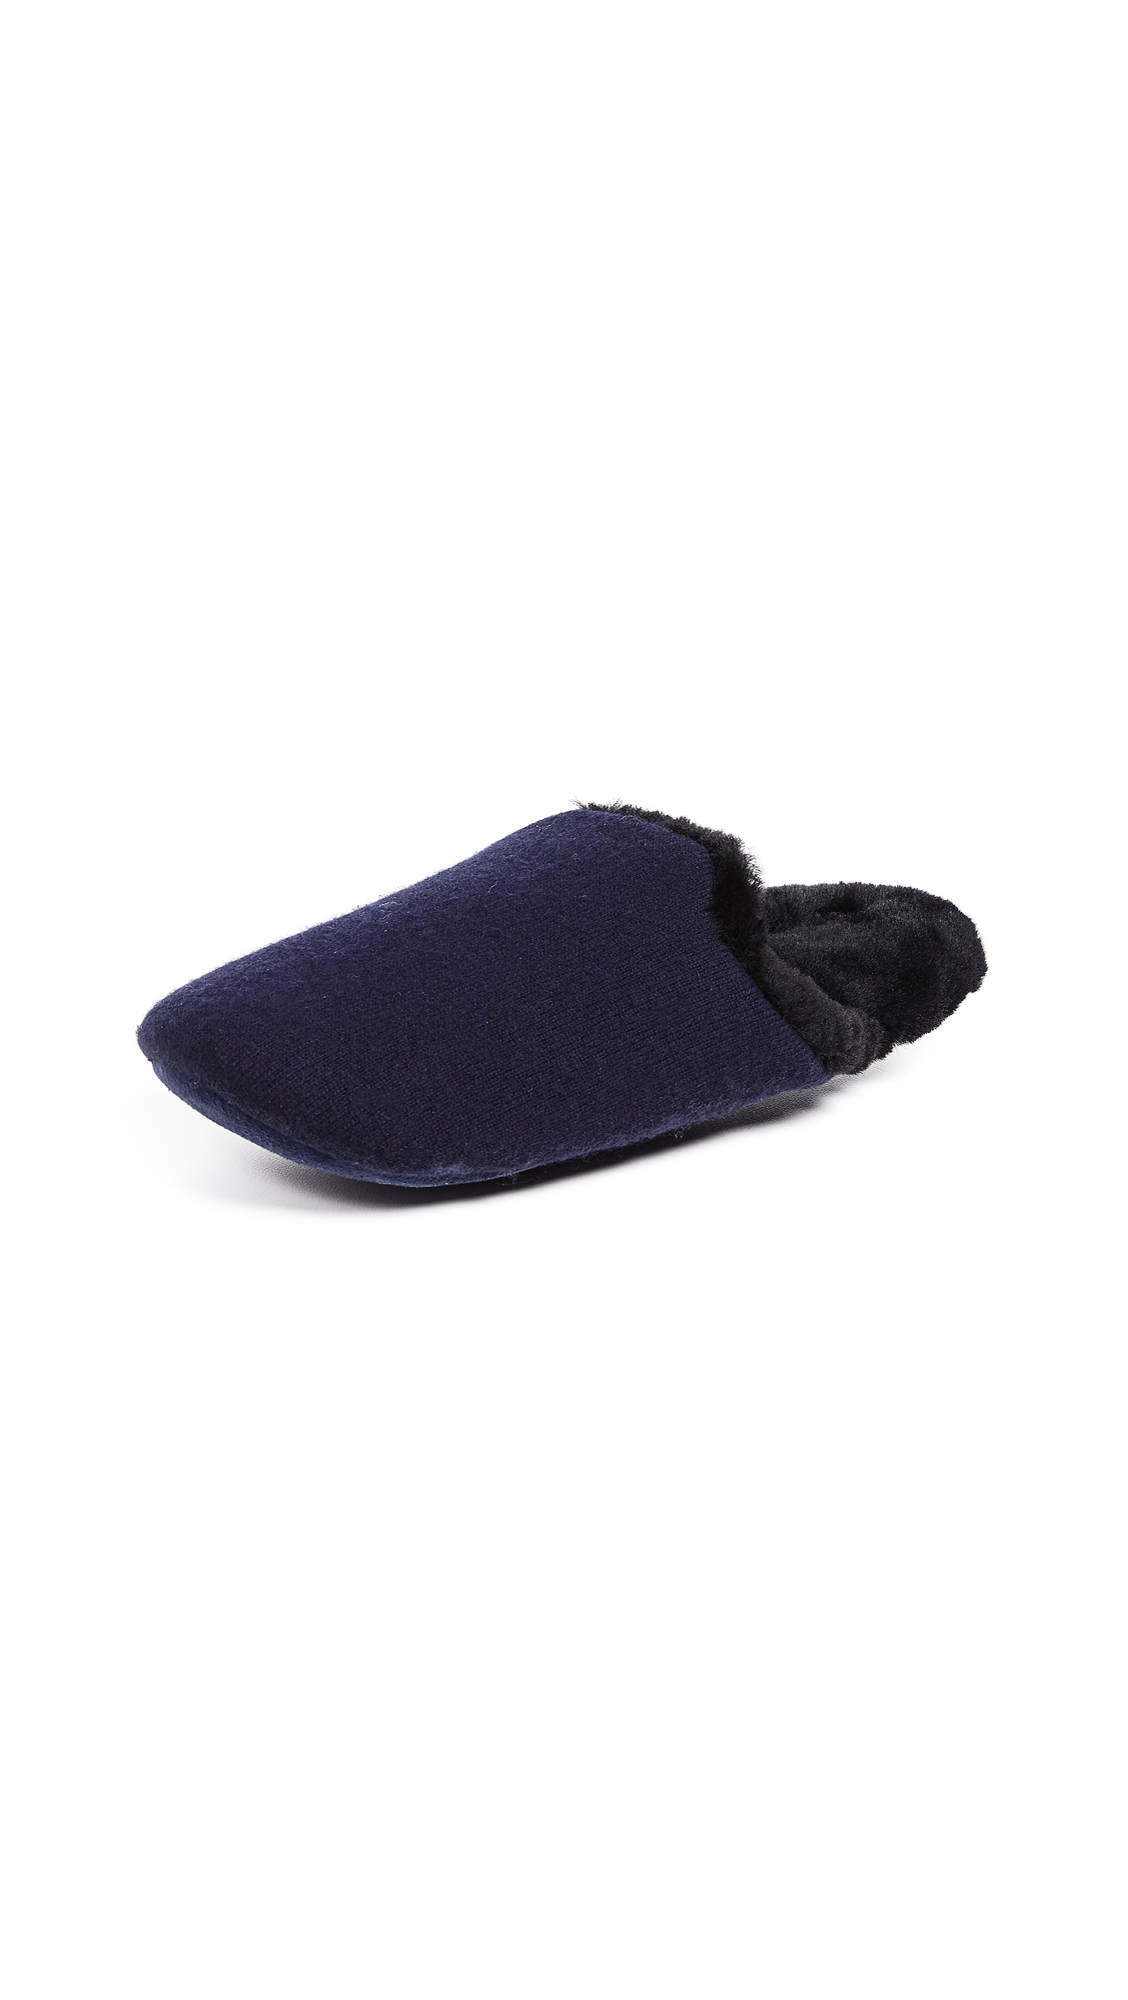 Vince Cadie Cashmere Slippers - Navy/Black